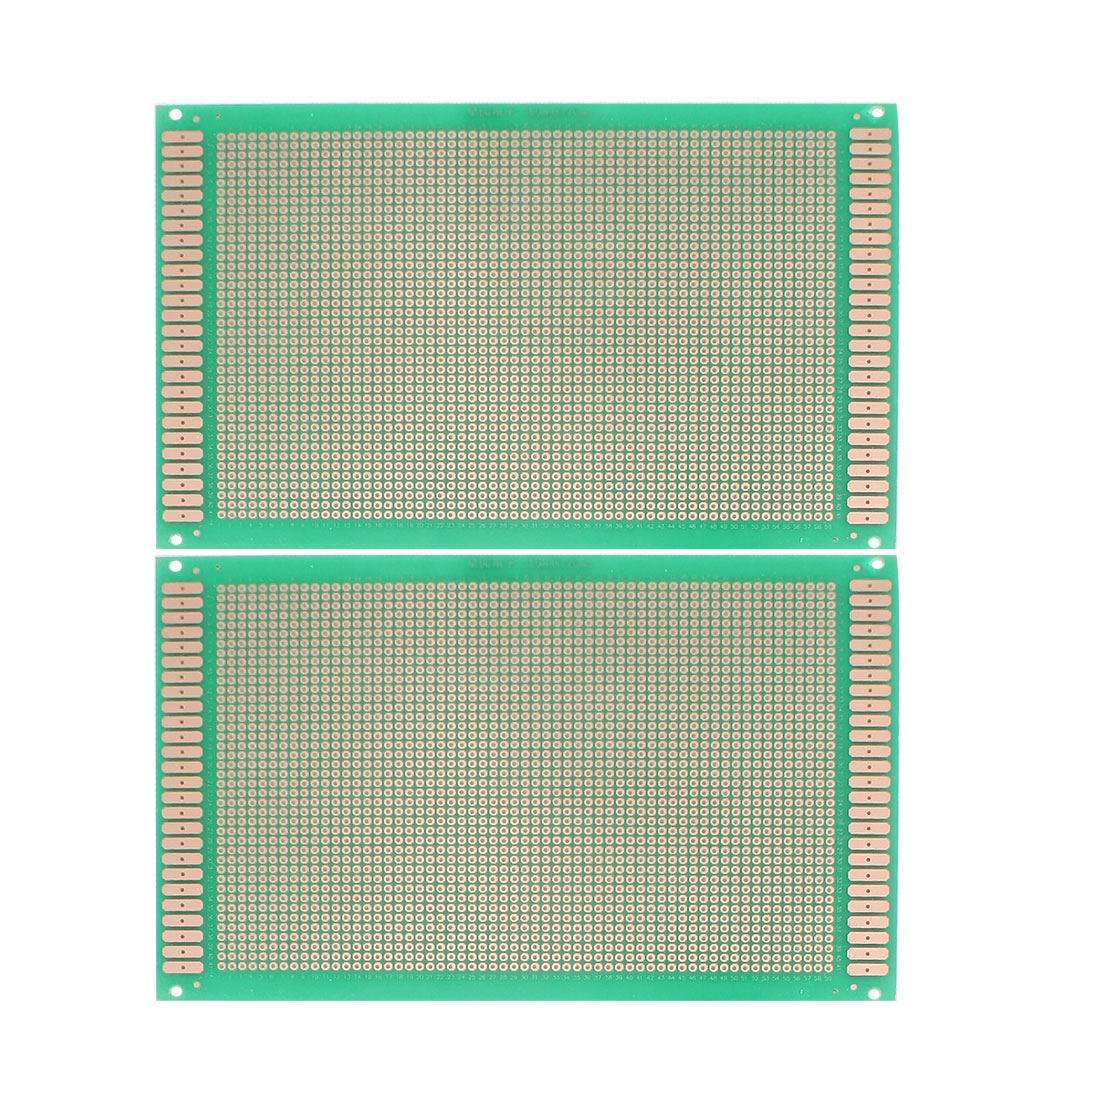 2 Pcs Copper Prototyping Single Side PCB Board Stripboard Green 18x12cm